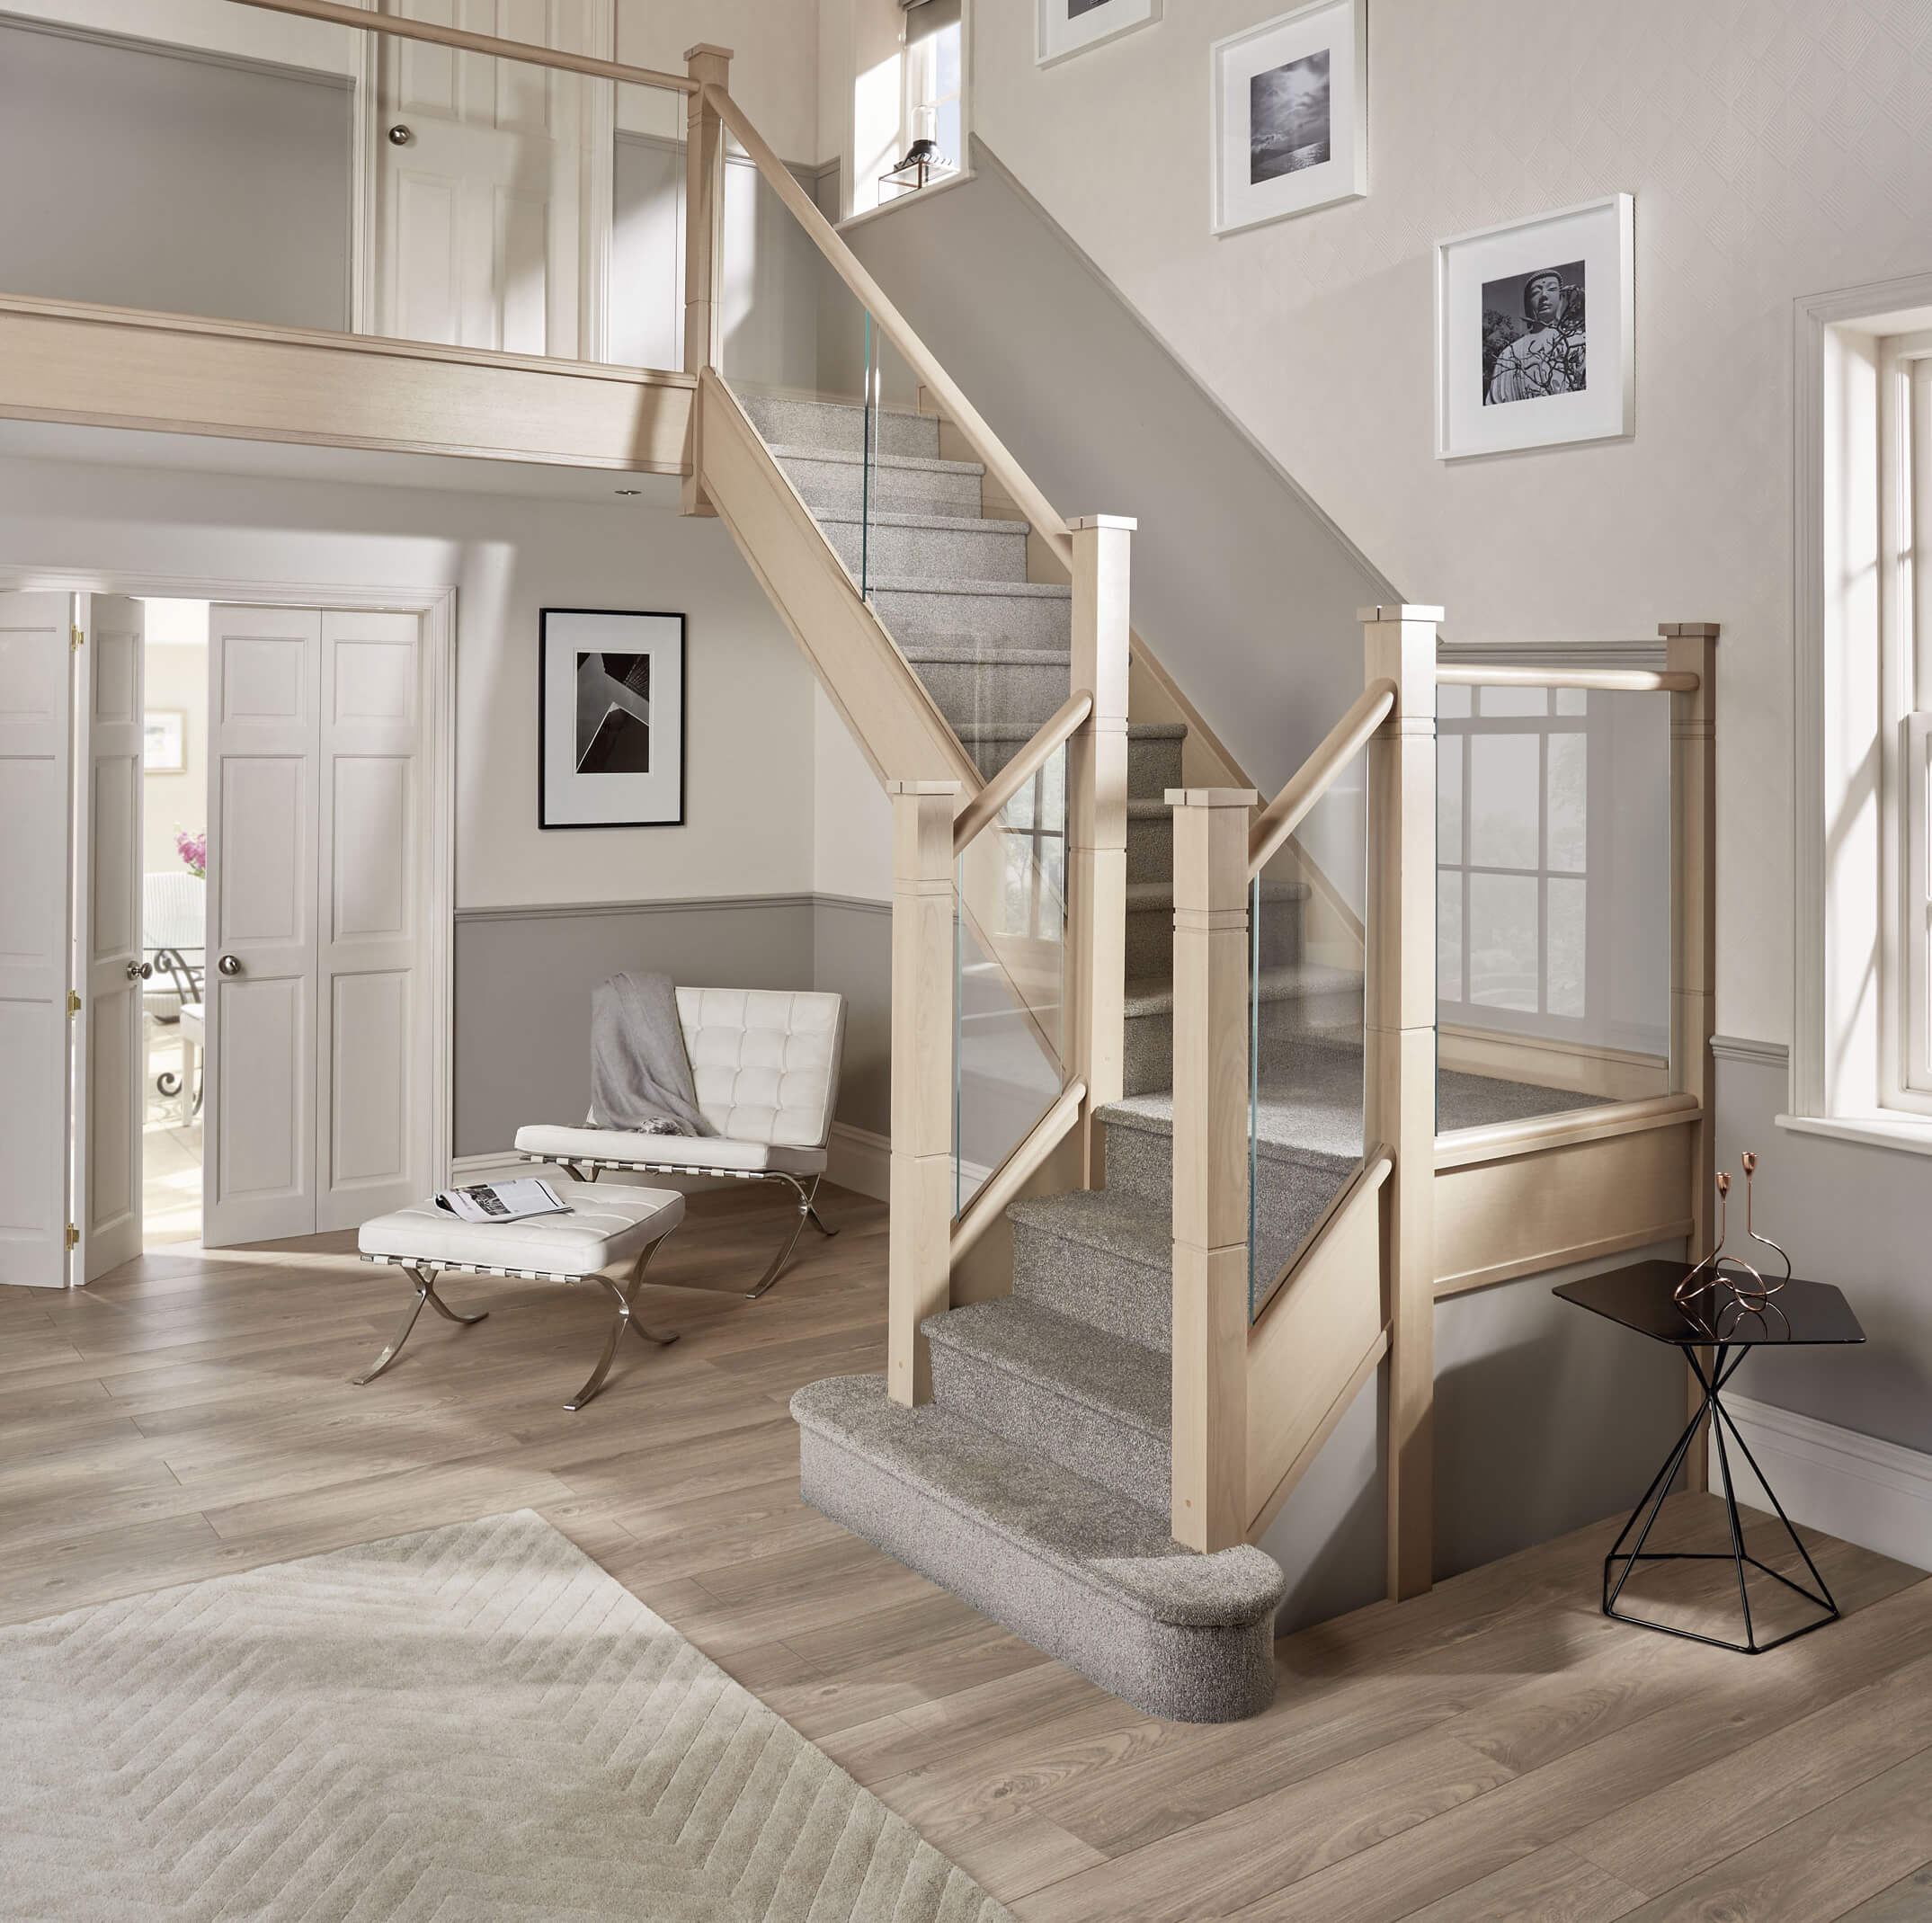 Staircase Decorating Ideas With Modern Design: Contemporary Glass Staircase Design